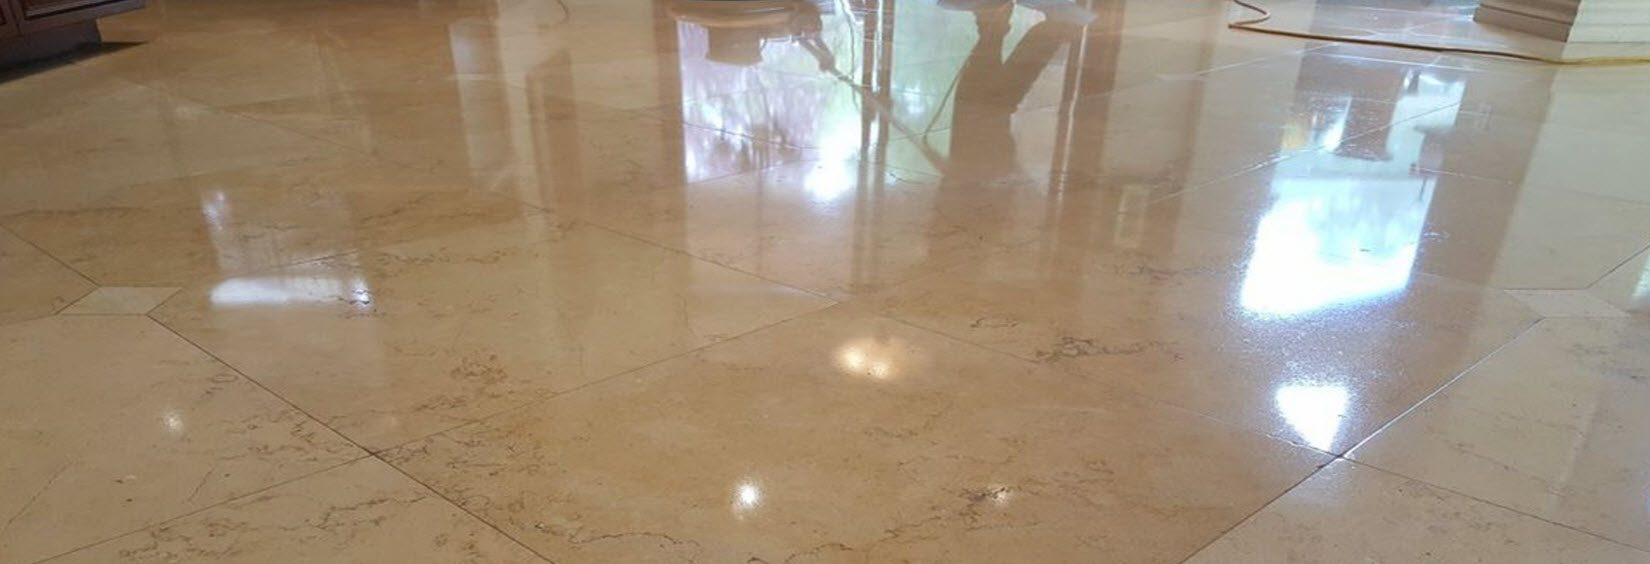 Contact us las vegas floor restoration las vegas nv natural contact us las vegas floor restoration las vegas nv natural stone refinishing ceramic tile grout cleaning travertine polishing marble sealing dailygadgetfo Images